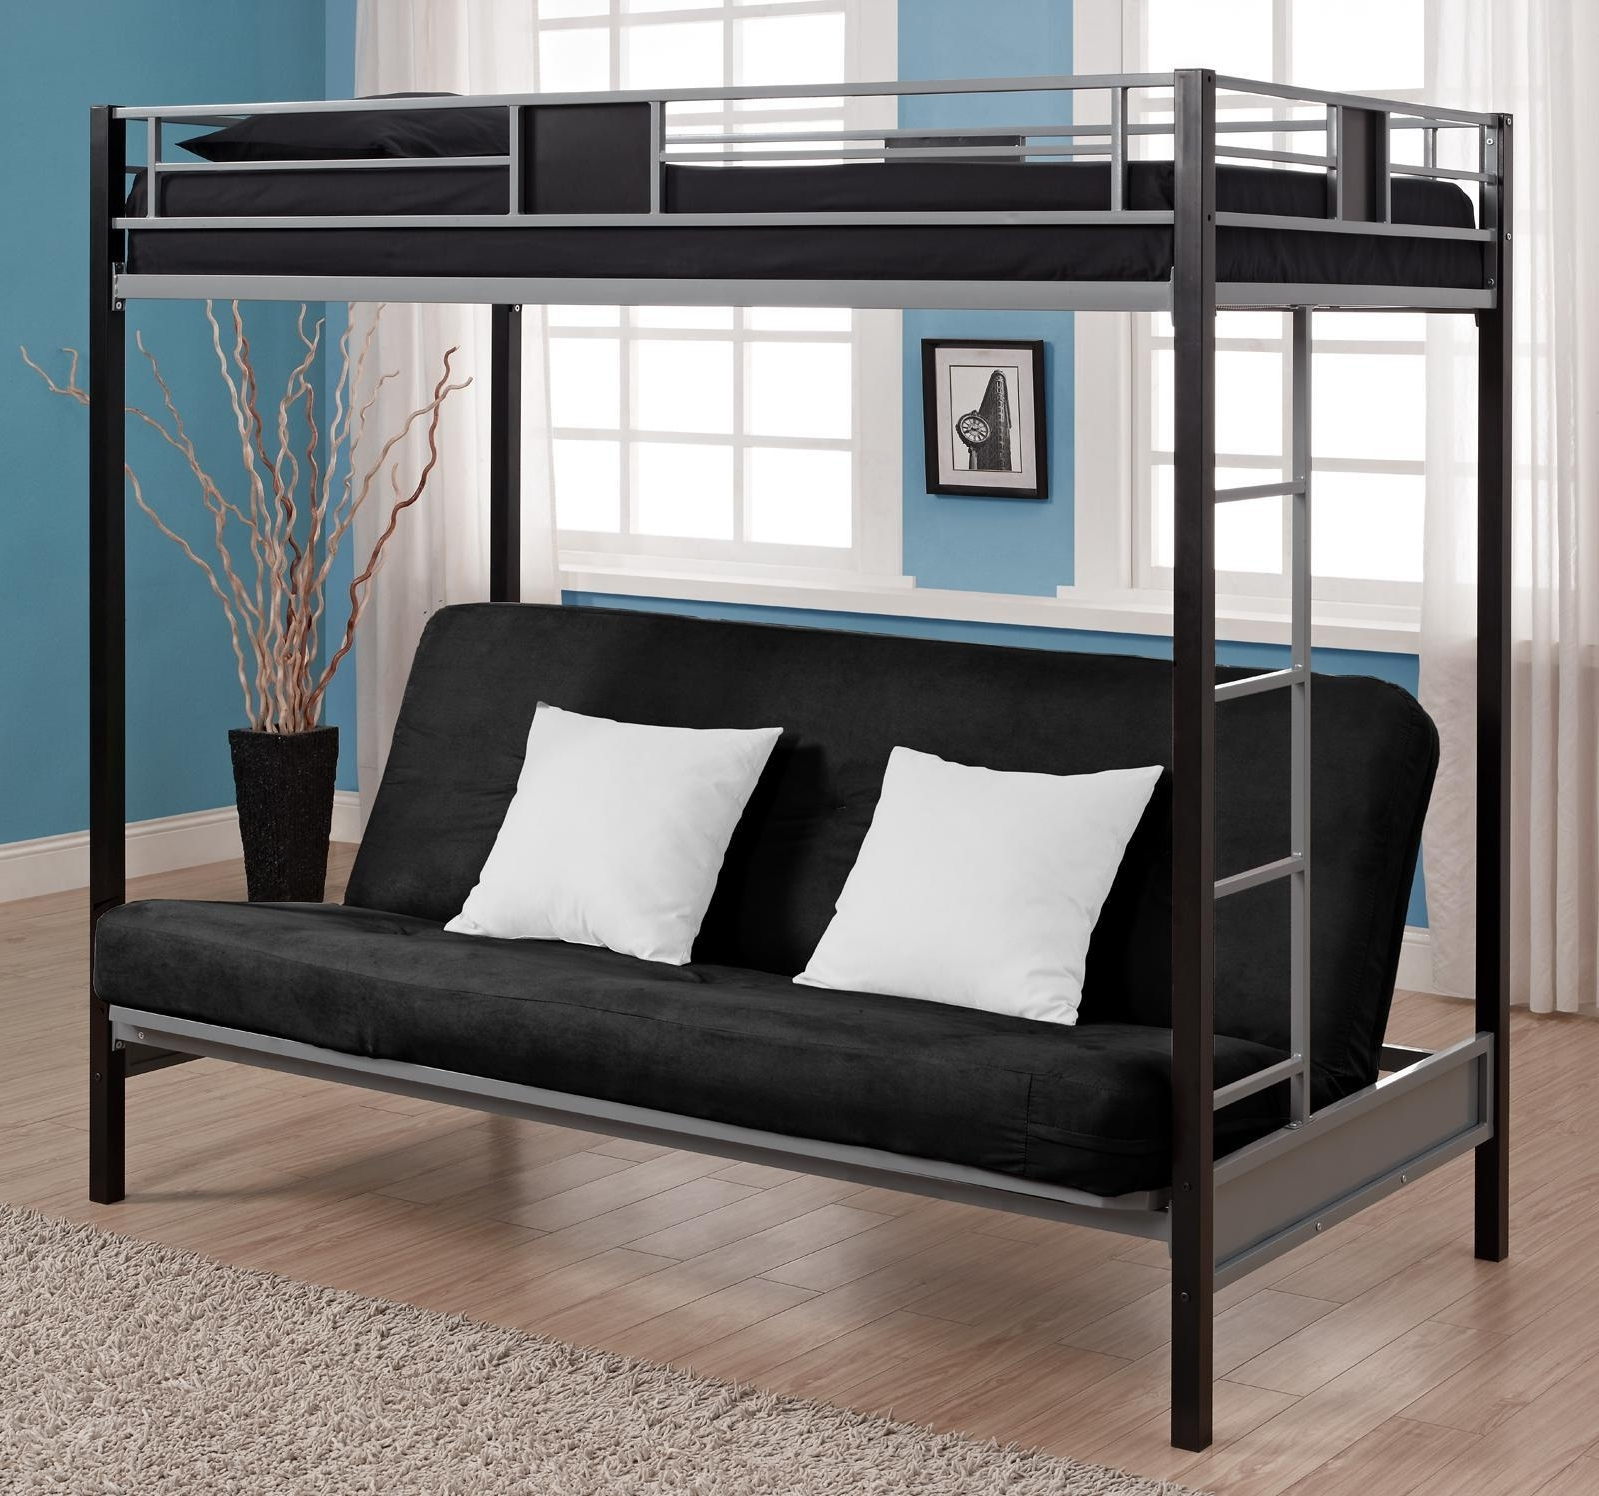 Bunk Bed With Sofa Bed – Interior Design Ideas Bedroom – Imagepoop With Regard To Favorite Sofa Bunk Beds (View 3 of 15)